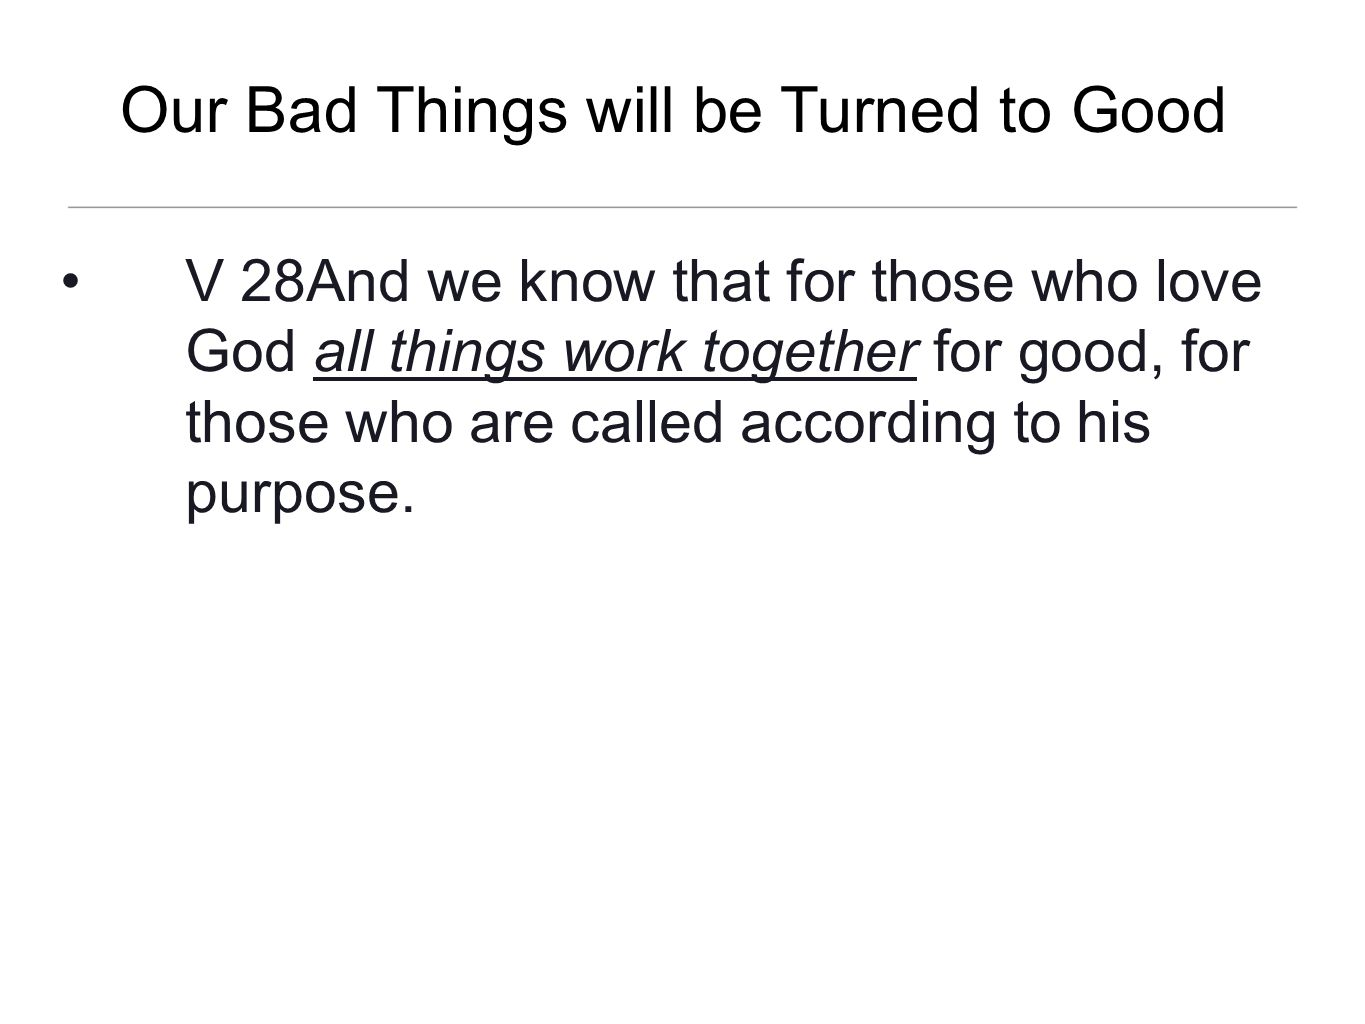 Our Bad Things will be Turned to Good